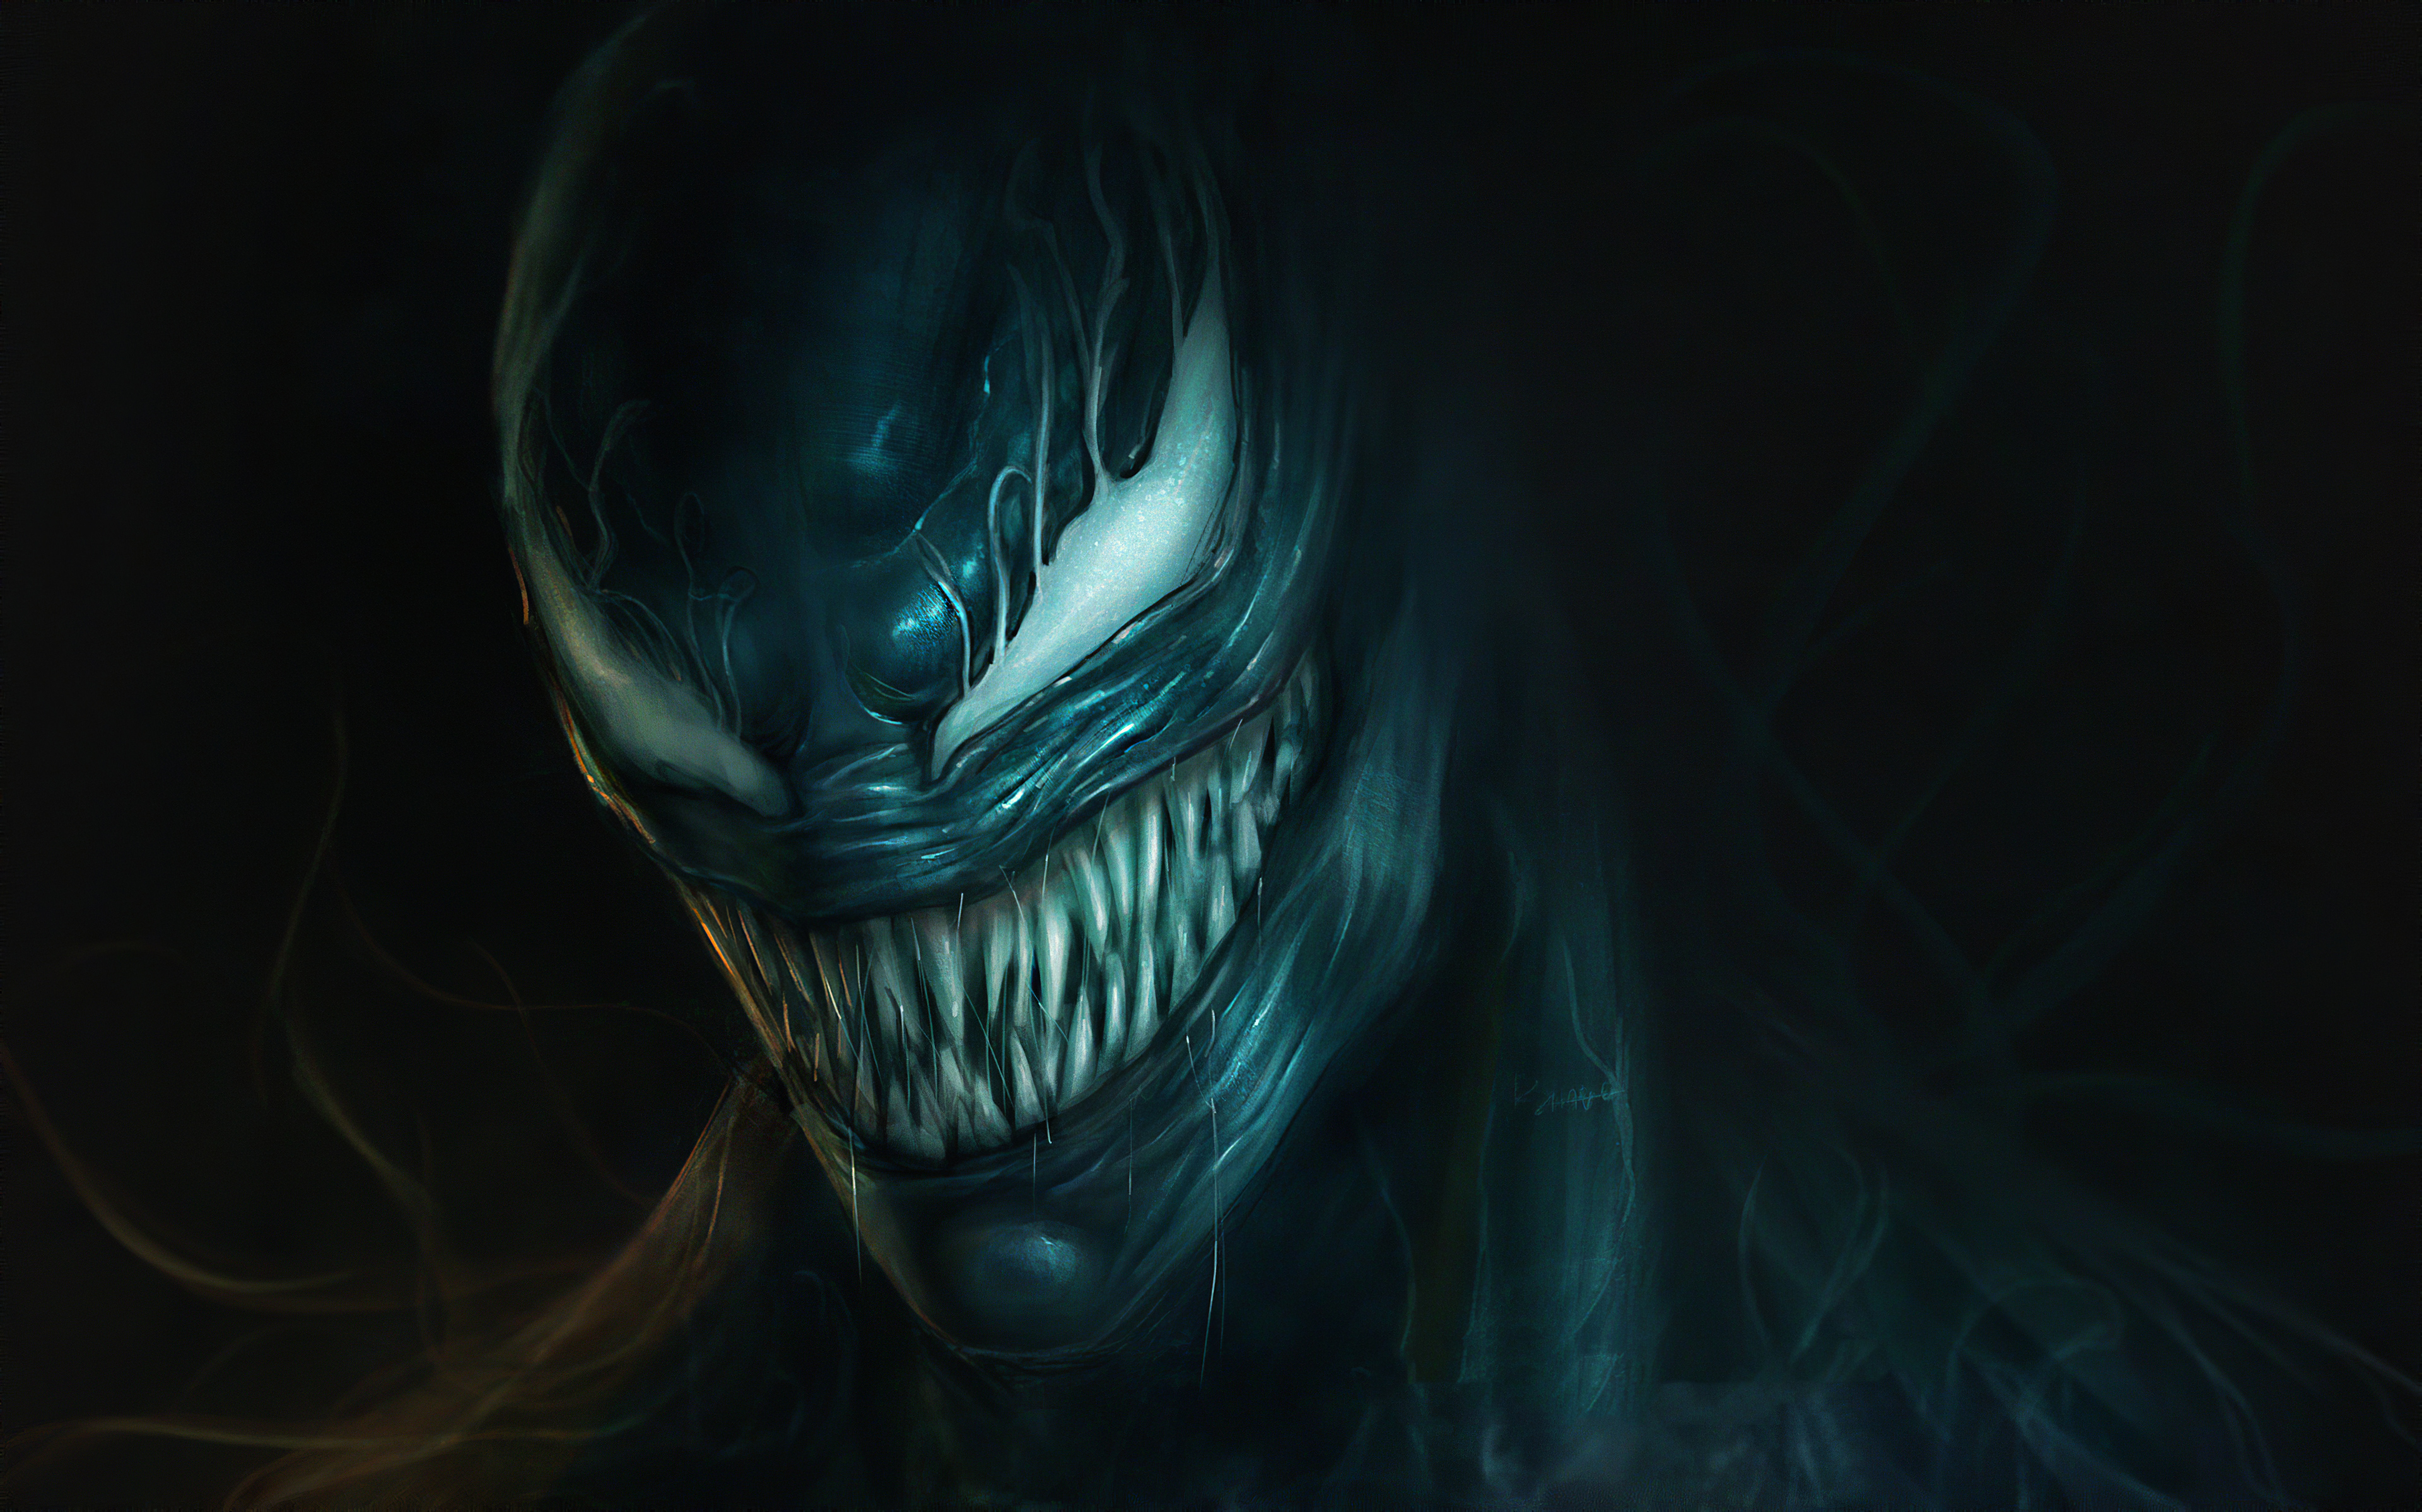 Angry Venom 4k Hd Superheroes 4k Wallpapers Images Backgrounds Photos And Pictures